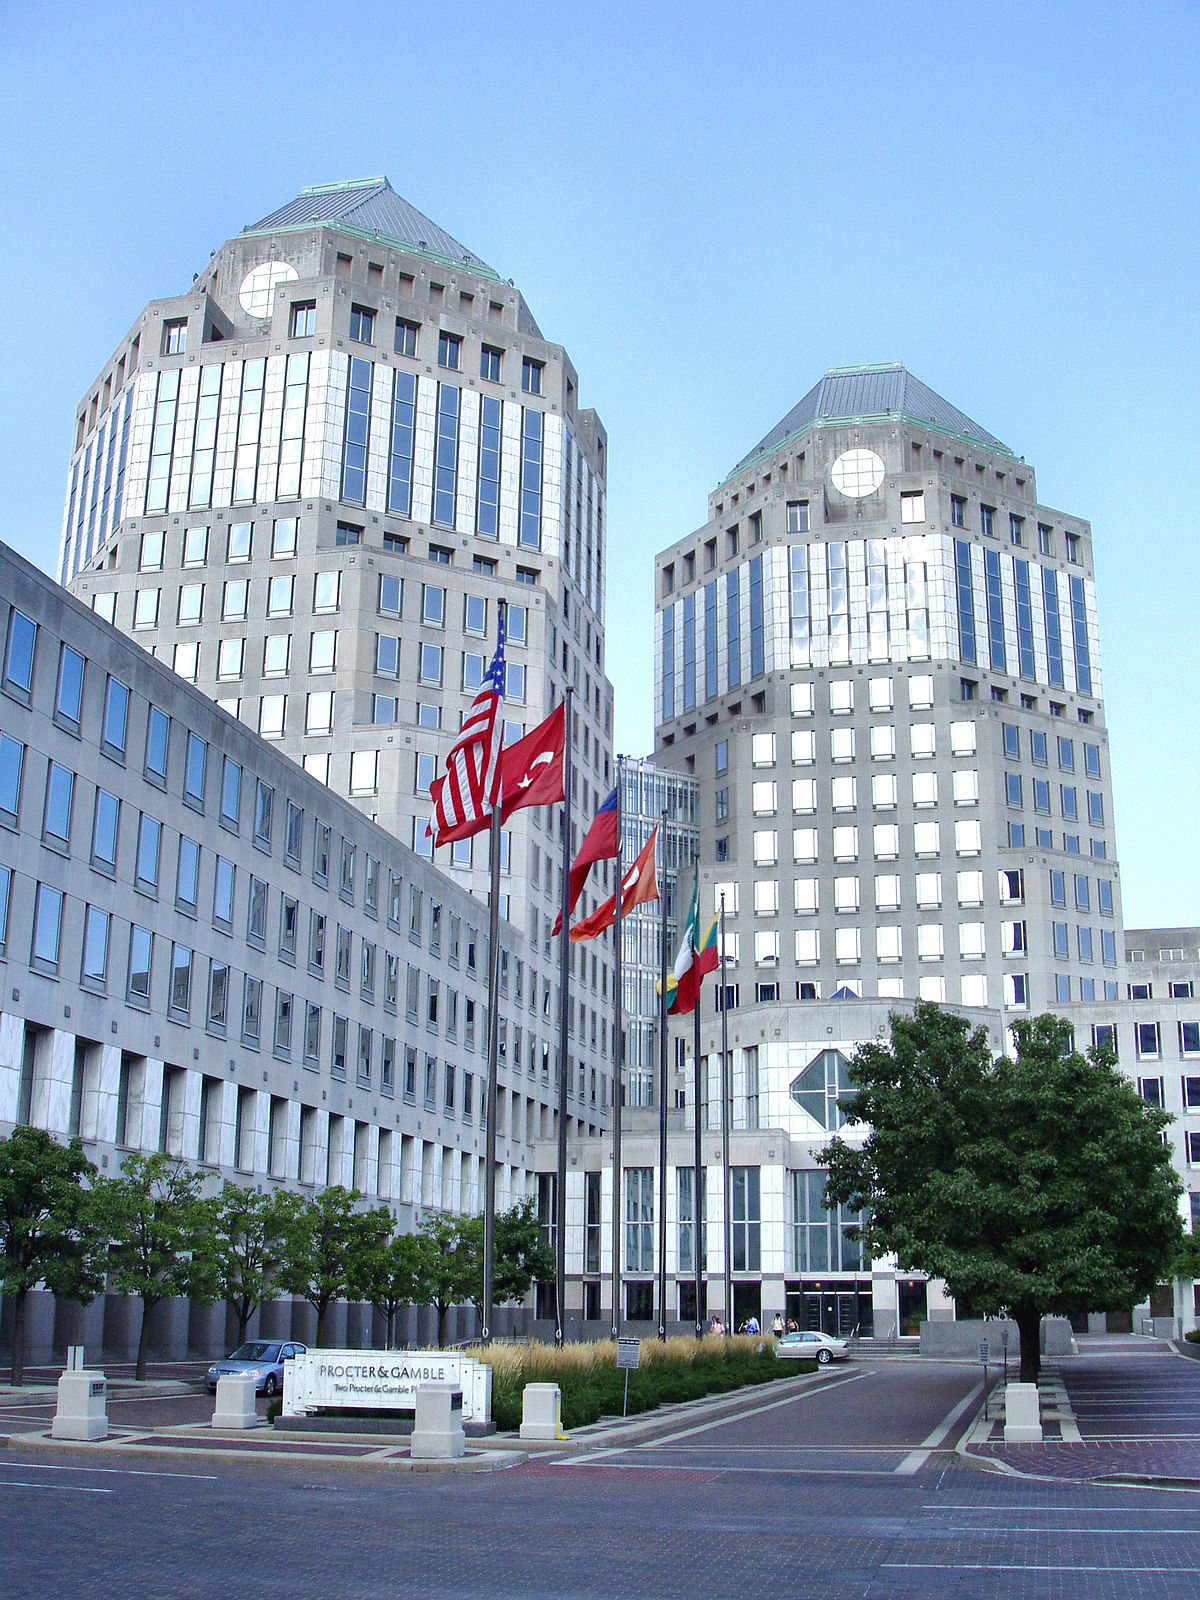 Procter & Gamble - Wikipedia